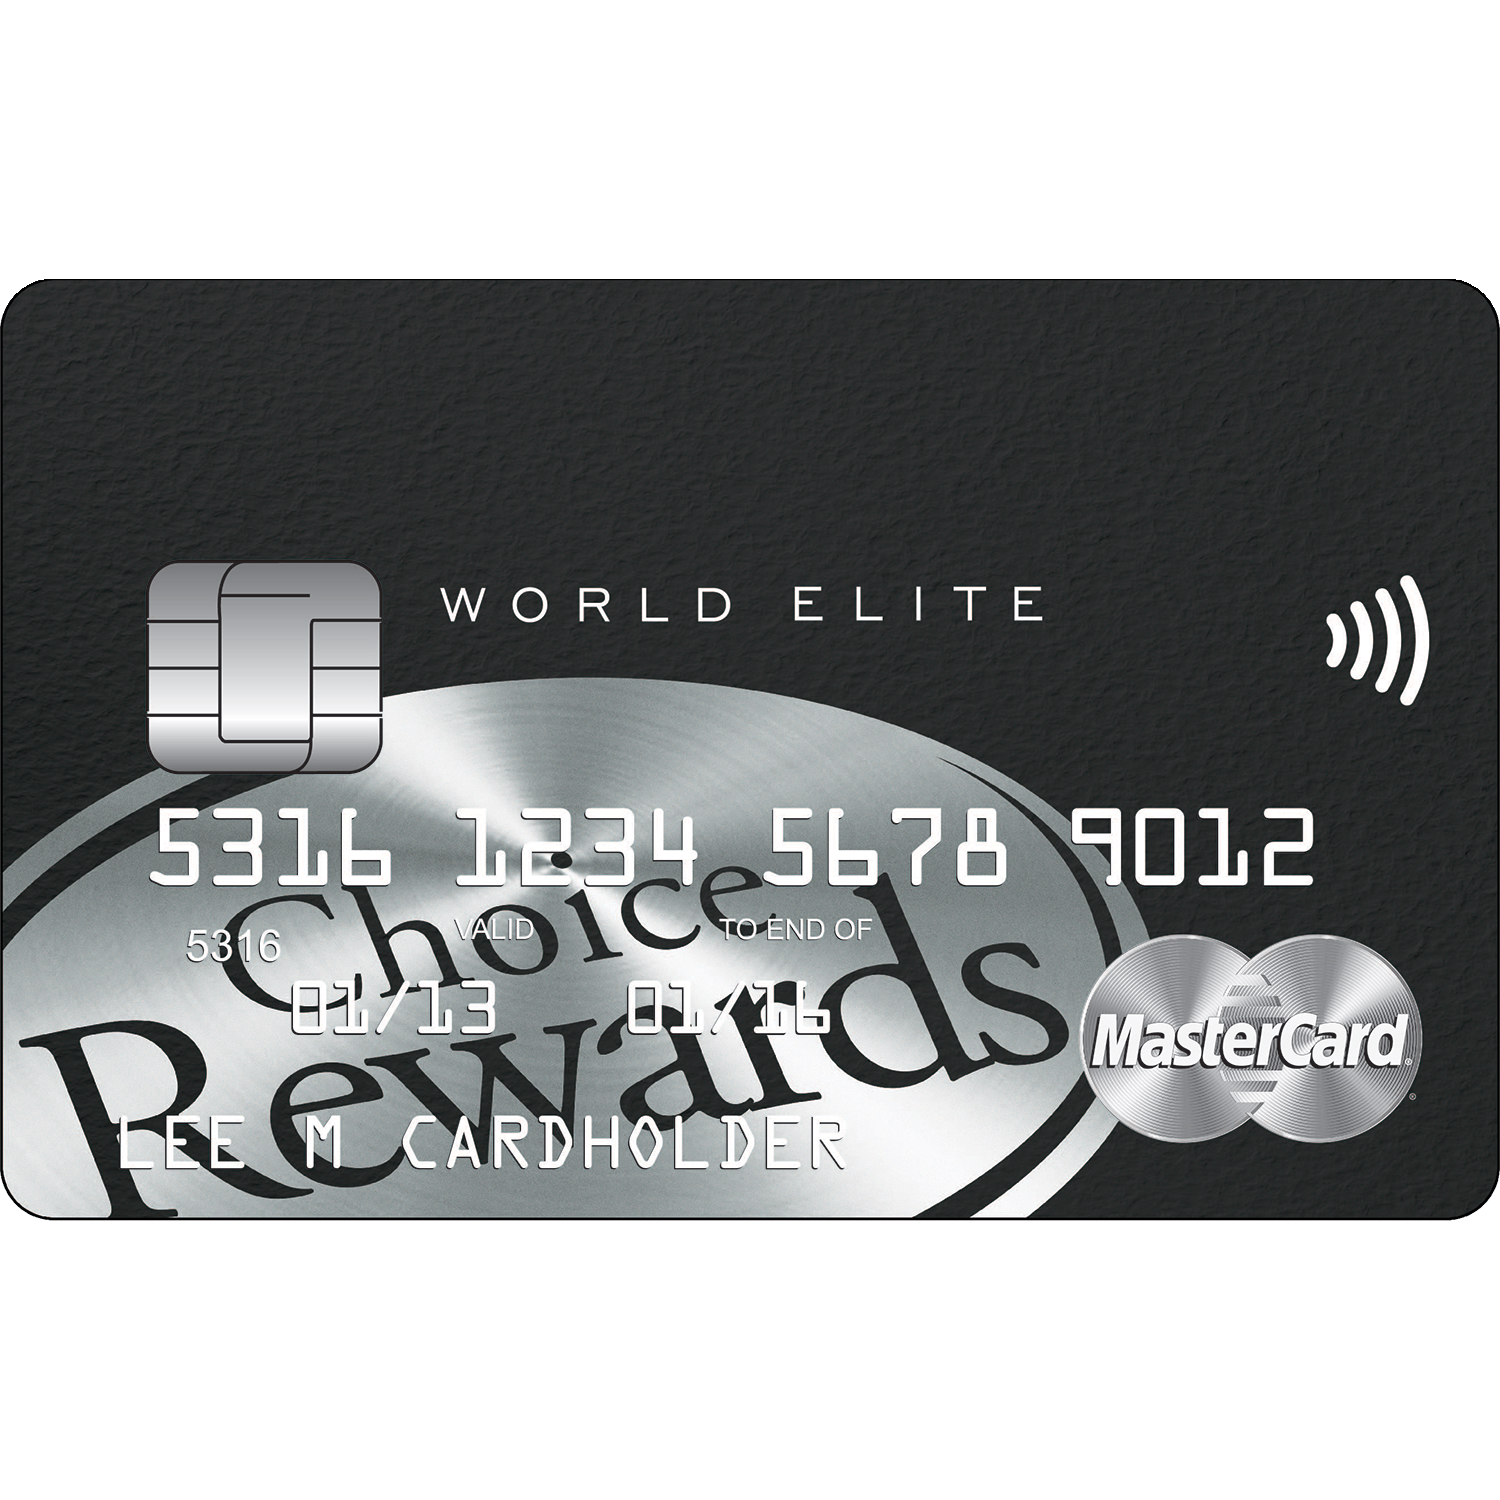 How to Apply for the Affinity Credit Union Choice Rewards World Elite MasterCard